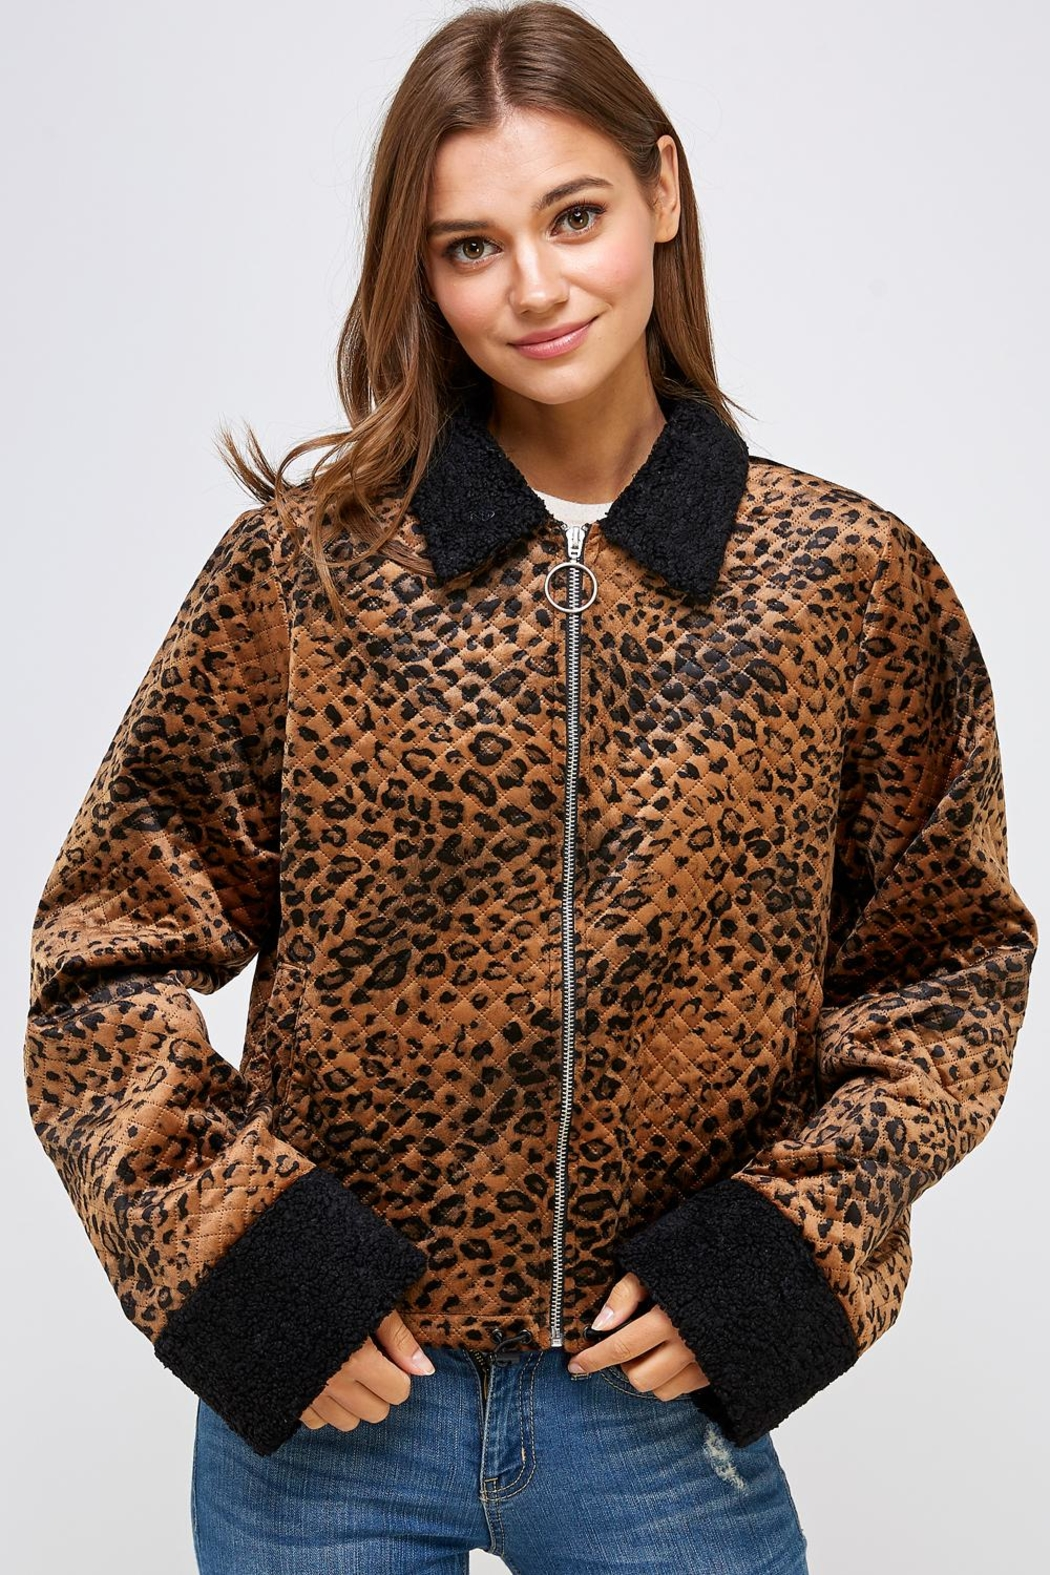 Emory Park Animal Quilted Jacket - Main Image